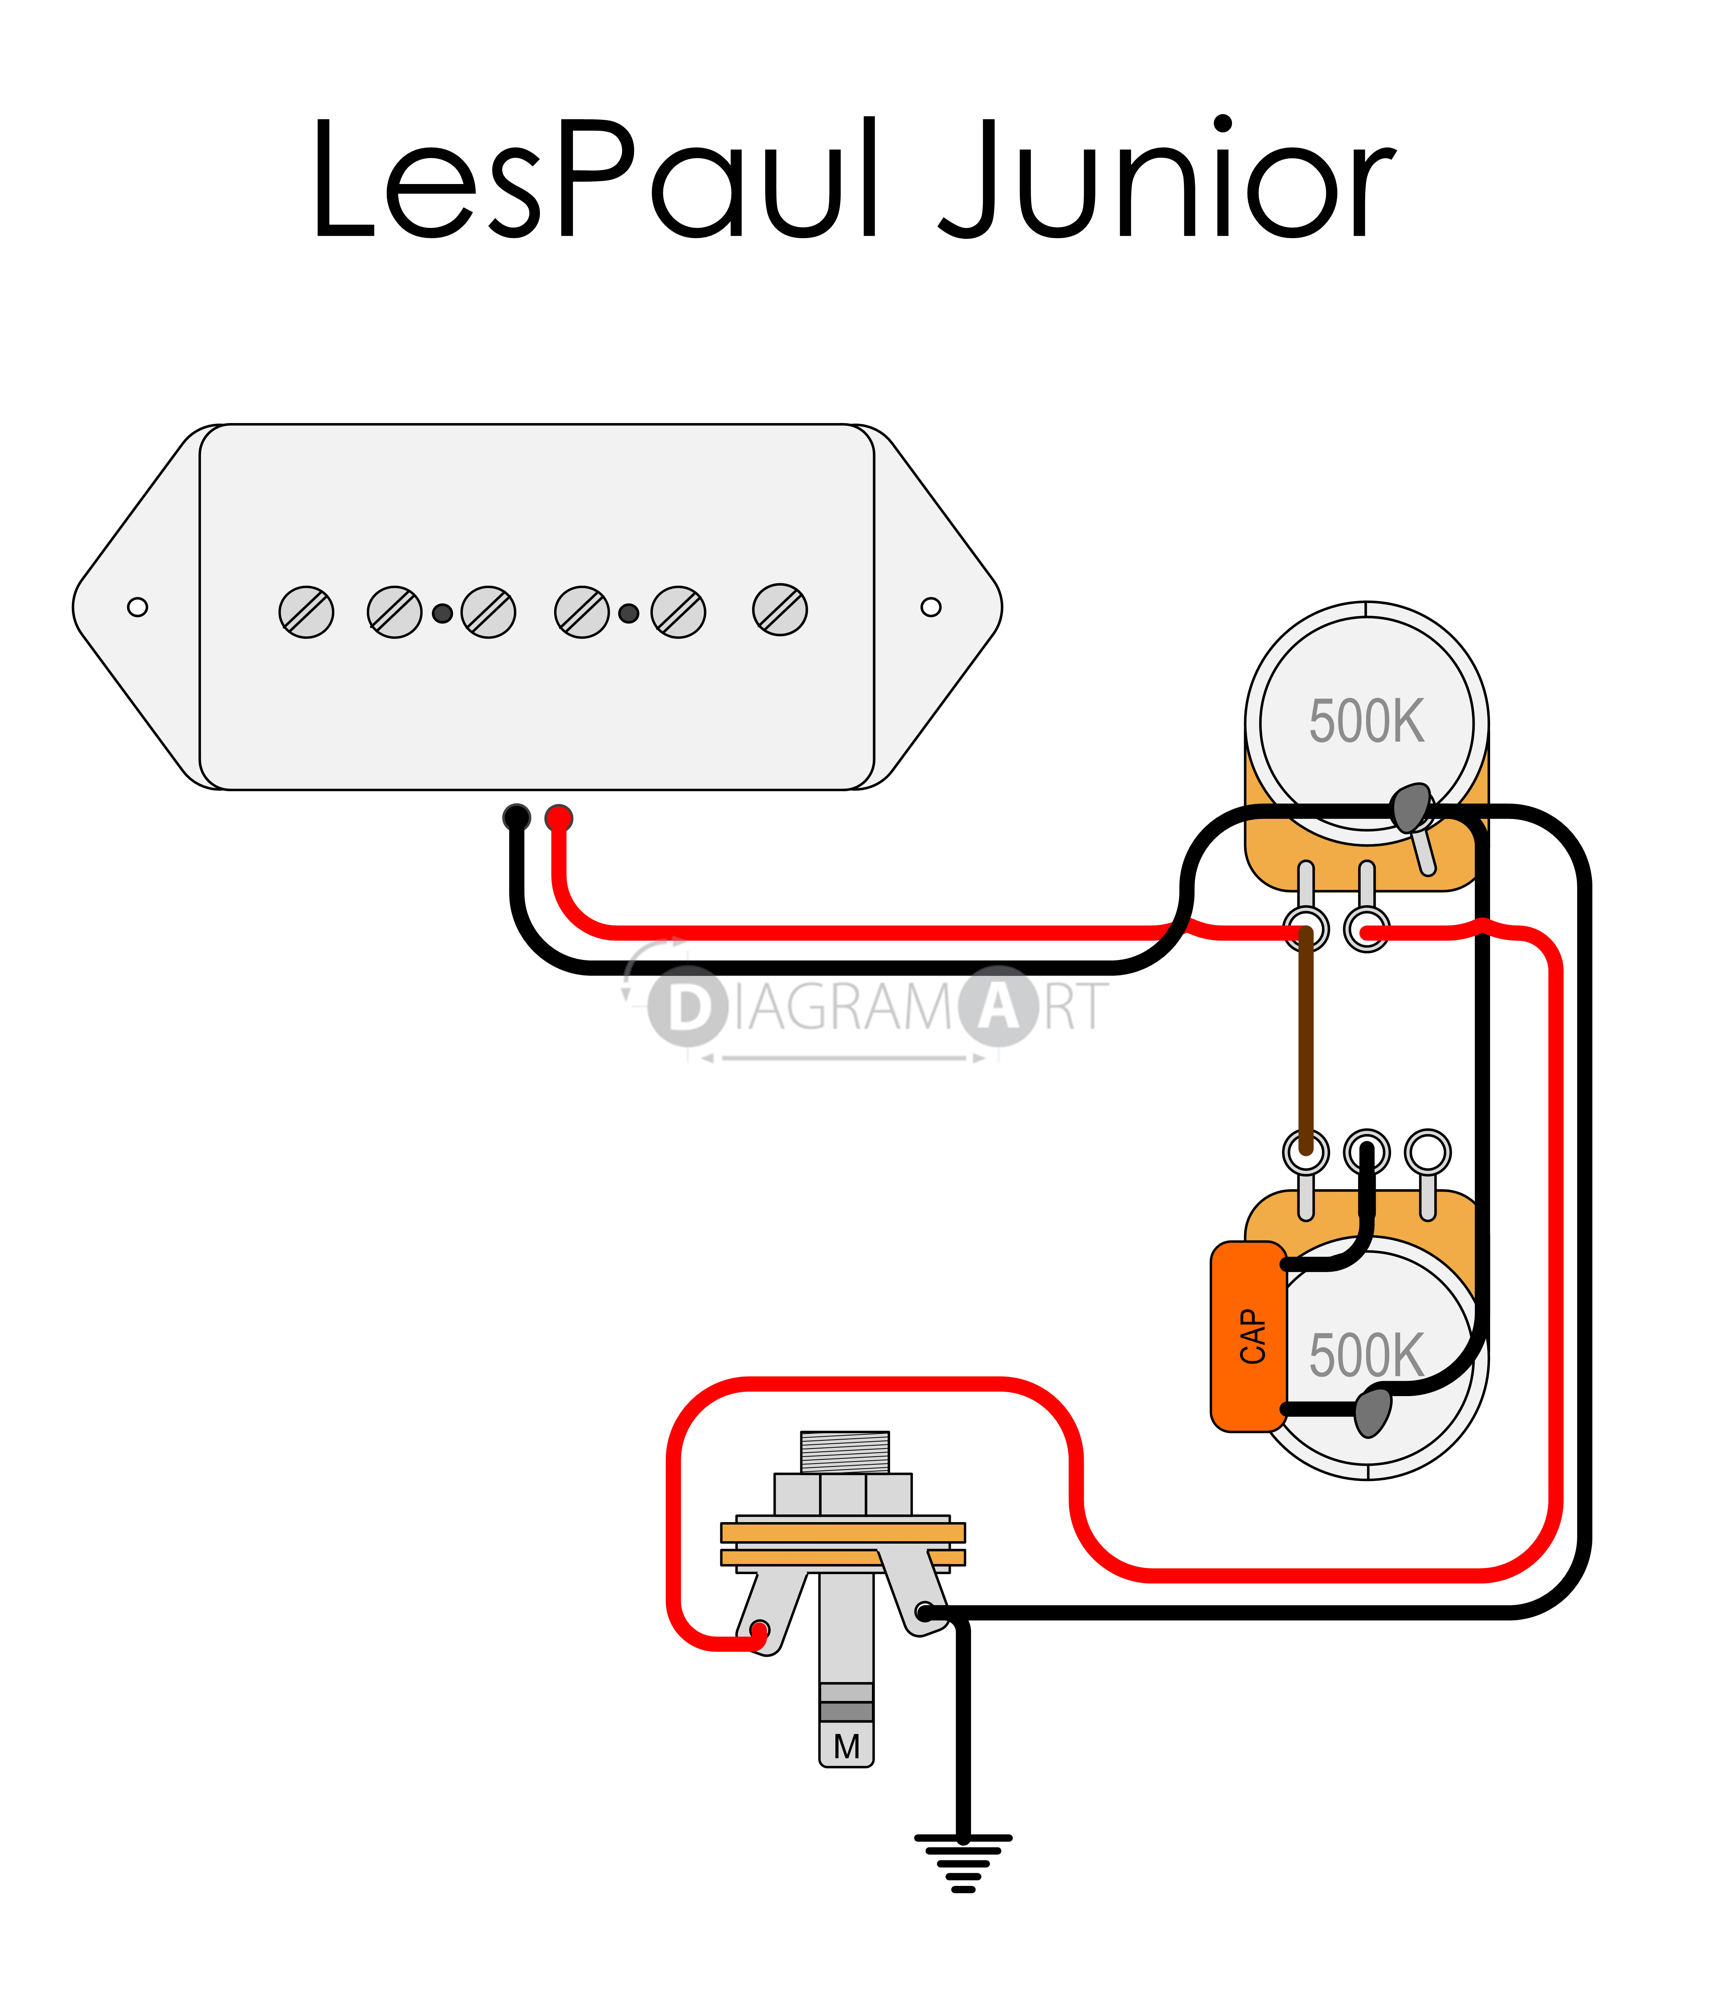 electric guitar wiring lespaul junior electric circuit diagramart rh diagramart com connect an electric guitar to a mac connect an electric guitar to a mac